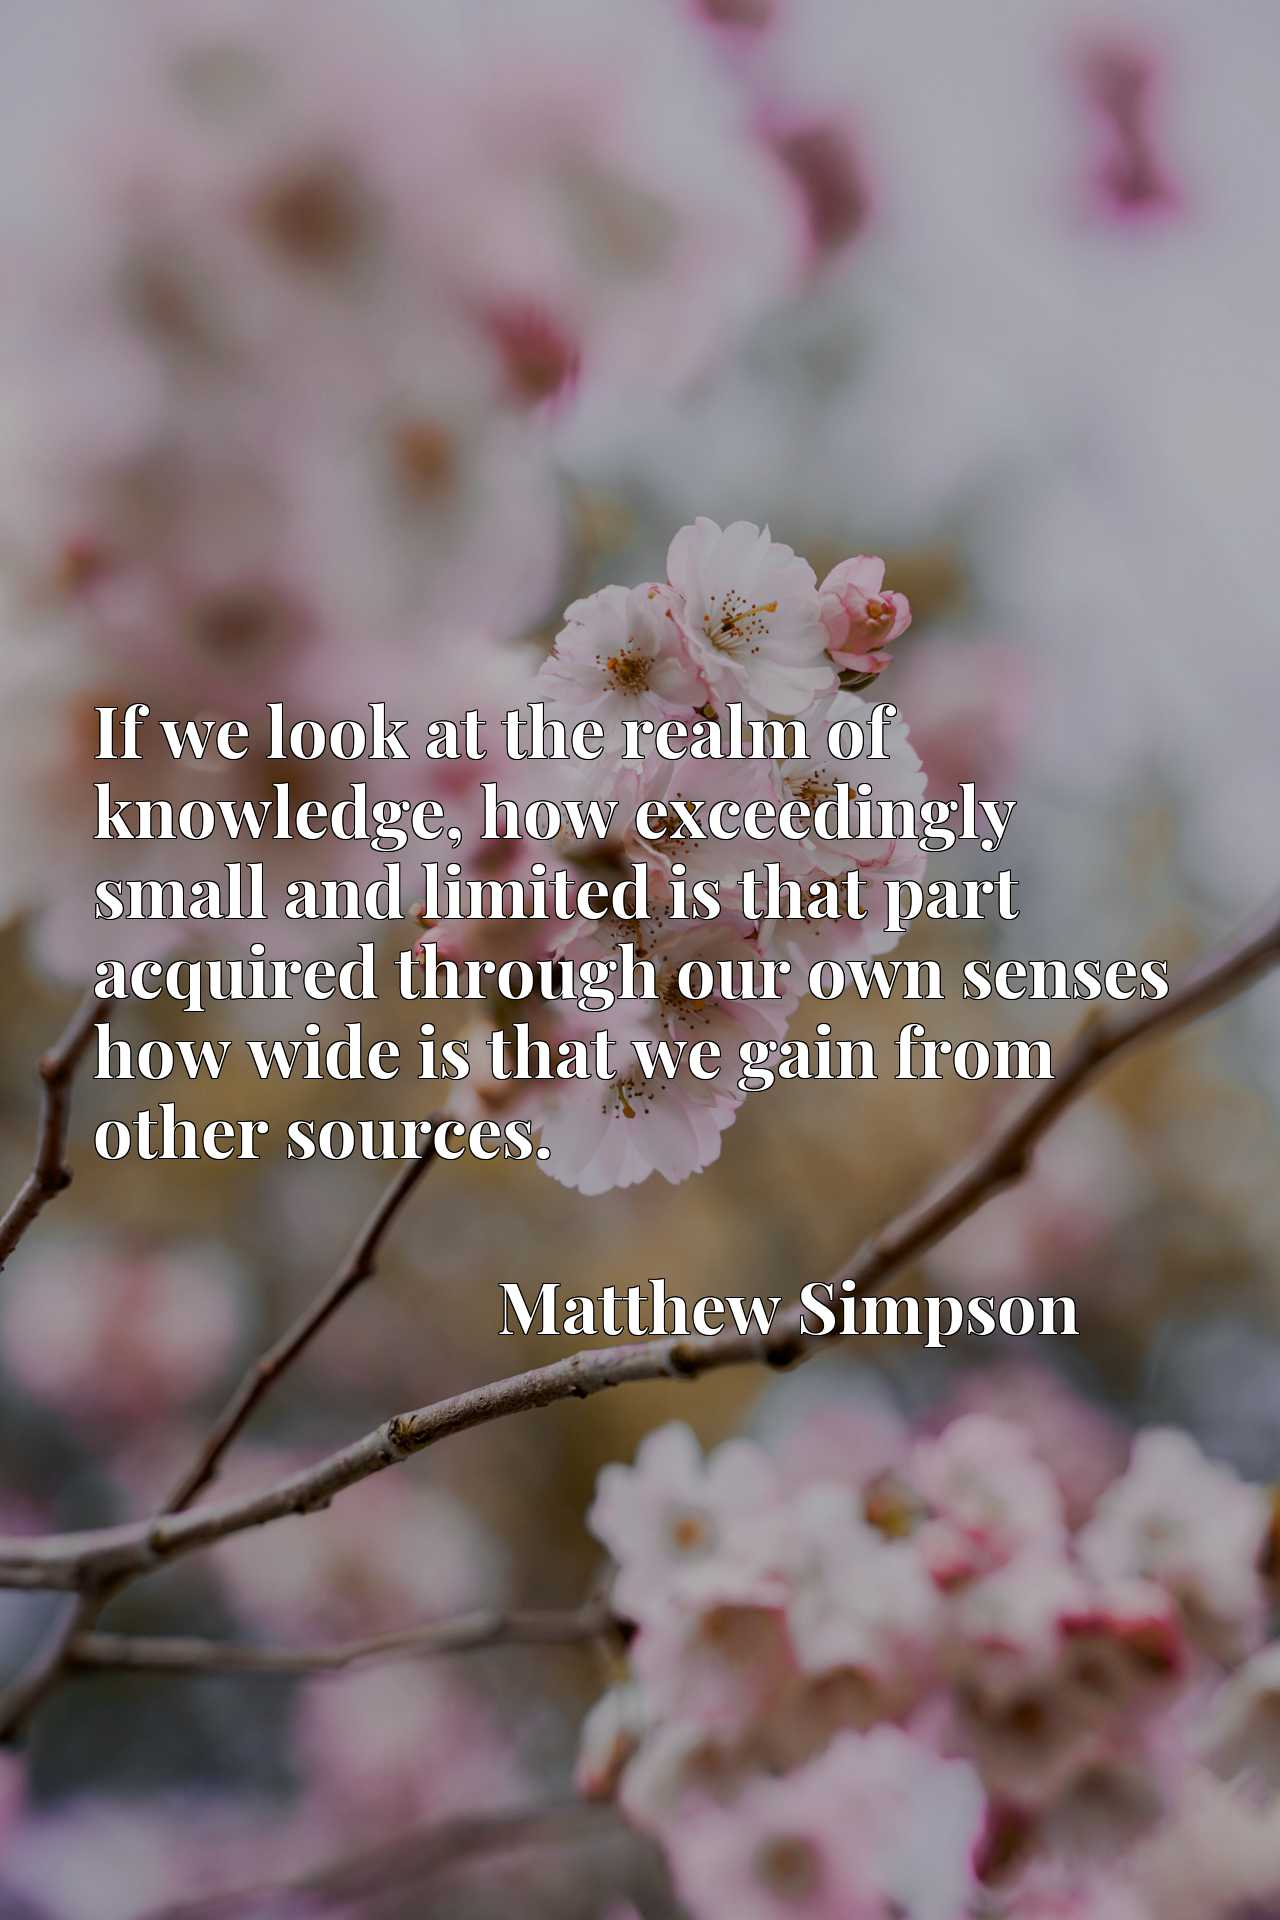 Quote Picture :If we look at the realm of knowledge, how exceedingly small and limited is that part acquired through our own senses how wide is that we gain from other sources.